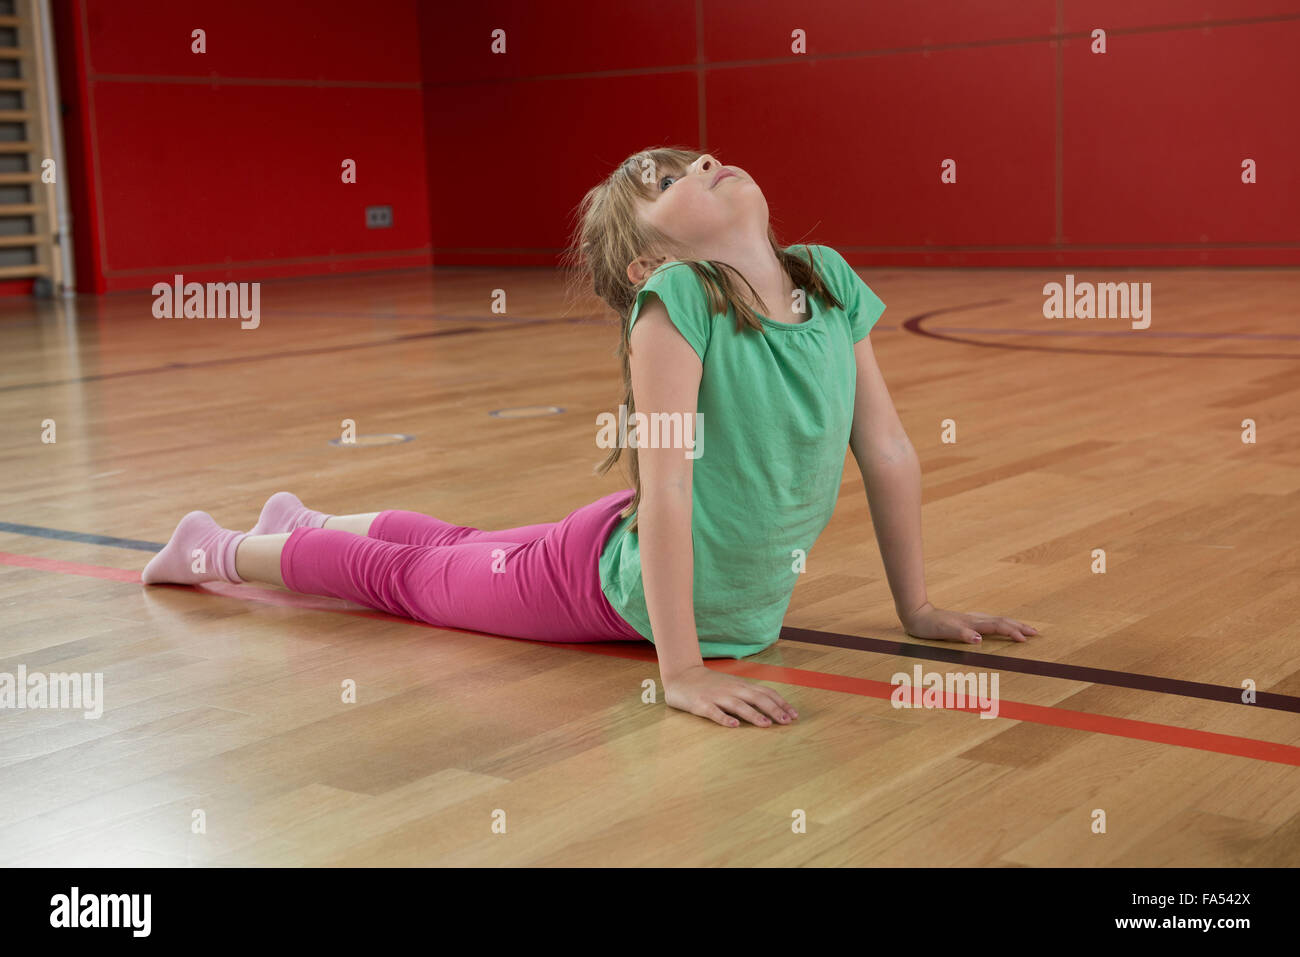 Girl practicing upward facing dog position in sports hall, Munich, Bavaria, Germany - Stock Image